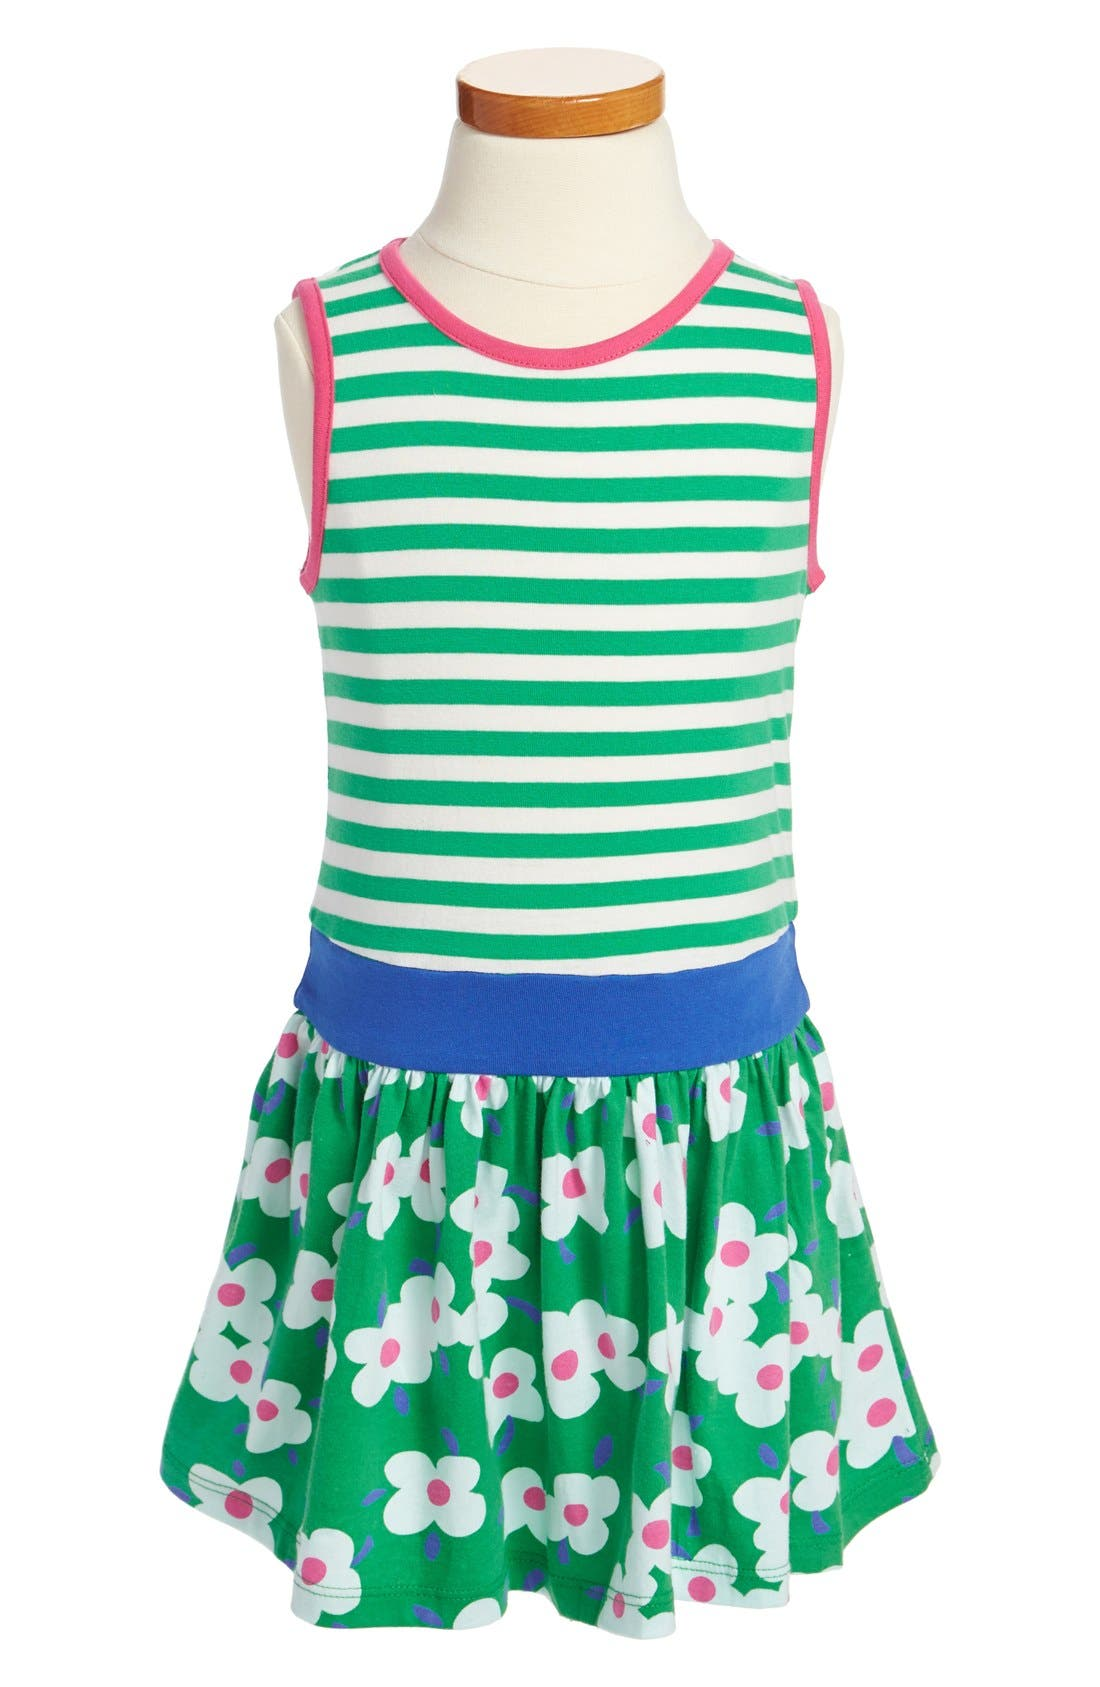 Main Image - Mini Boden 'Jolly' Cotton Jersey Dress (Little Girls & Big Girls)